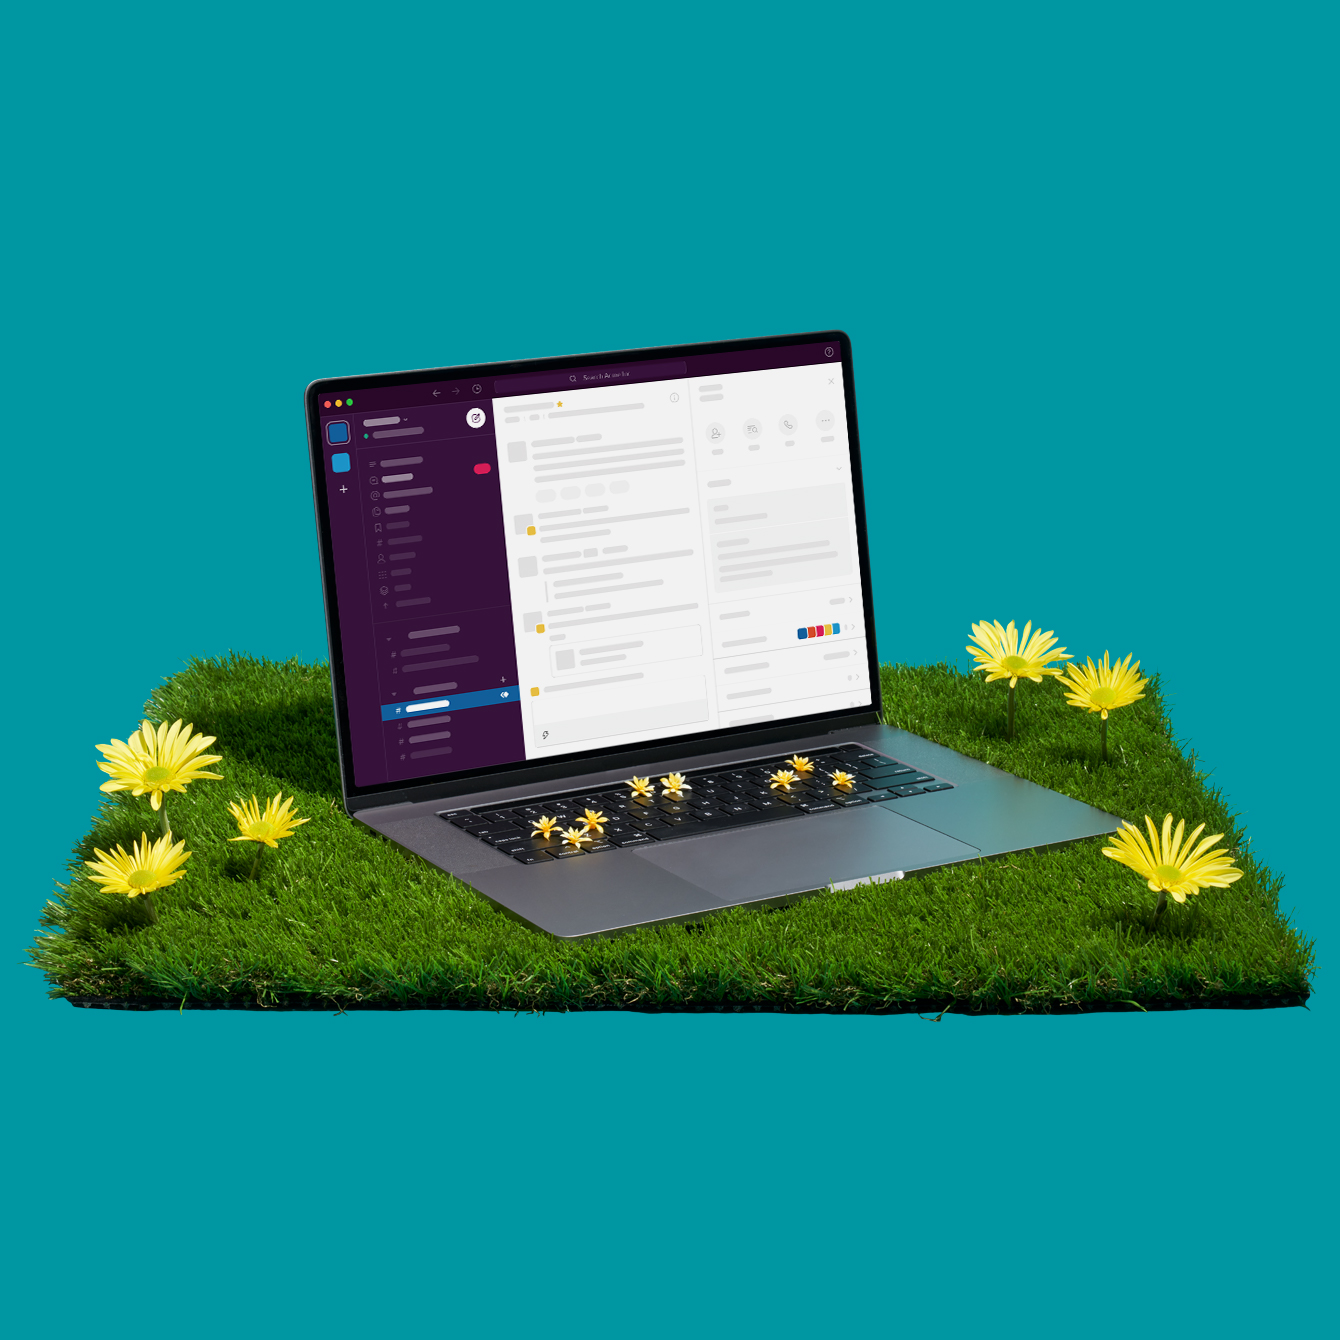 A laptop and blooming flowers sitting on turf